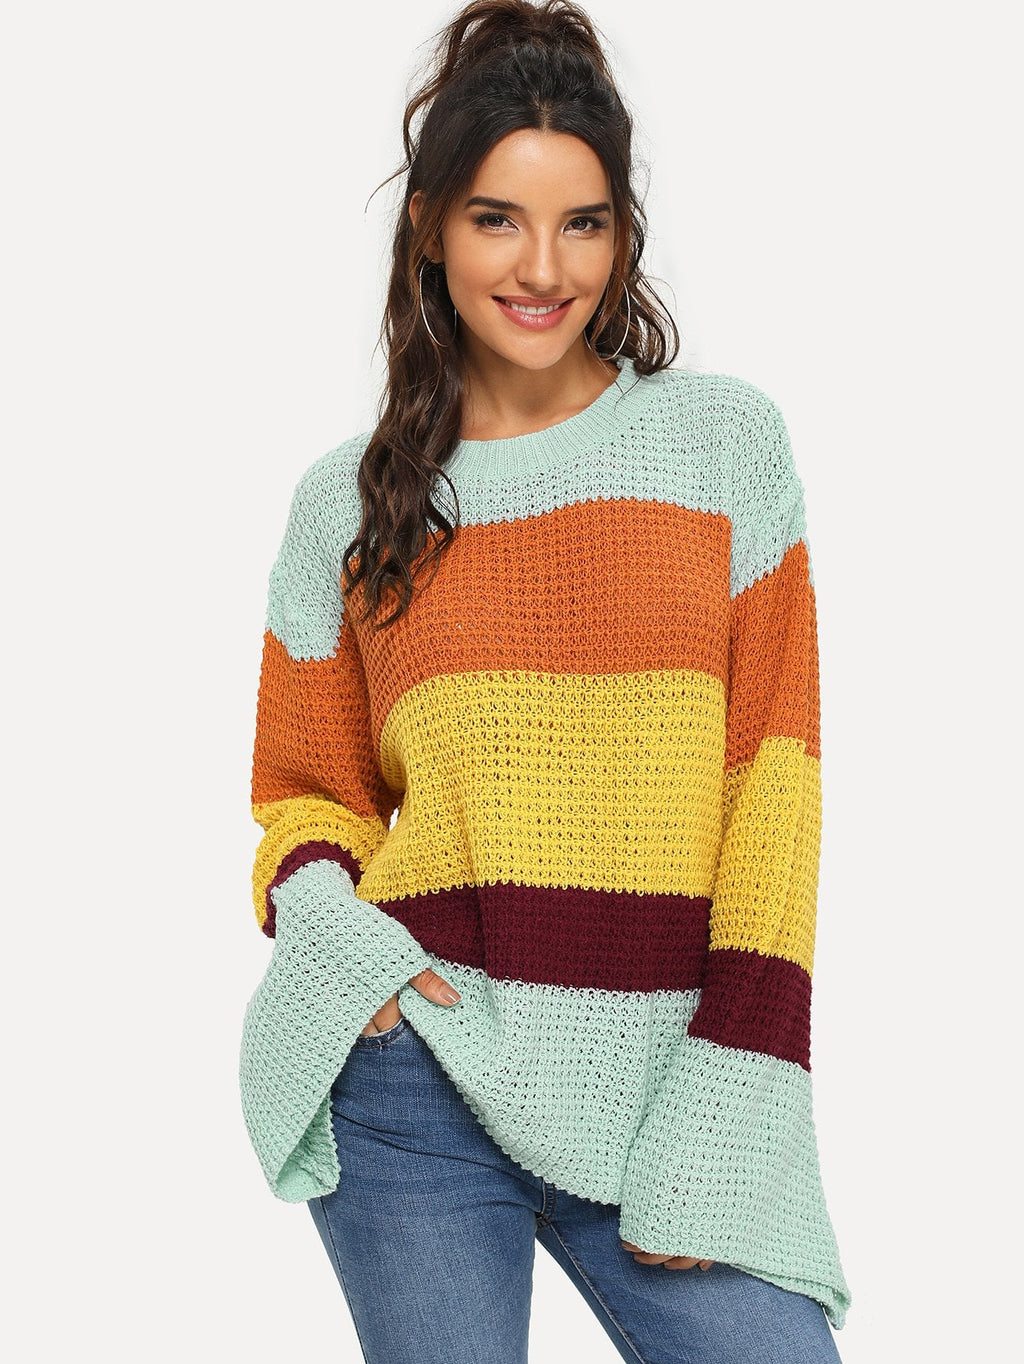 Drop Shoulder Color Block Sweater-Sunshine's Boutique & Gifts